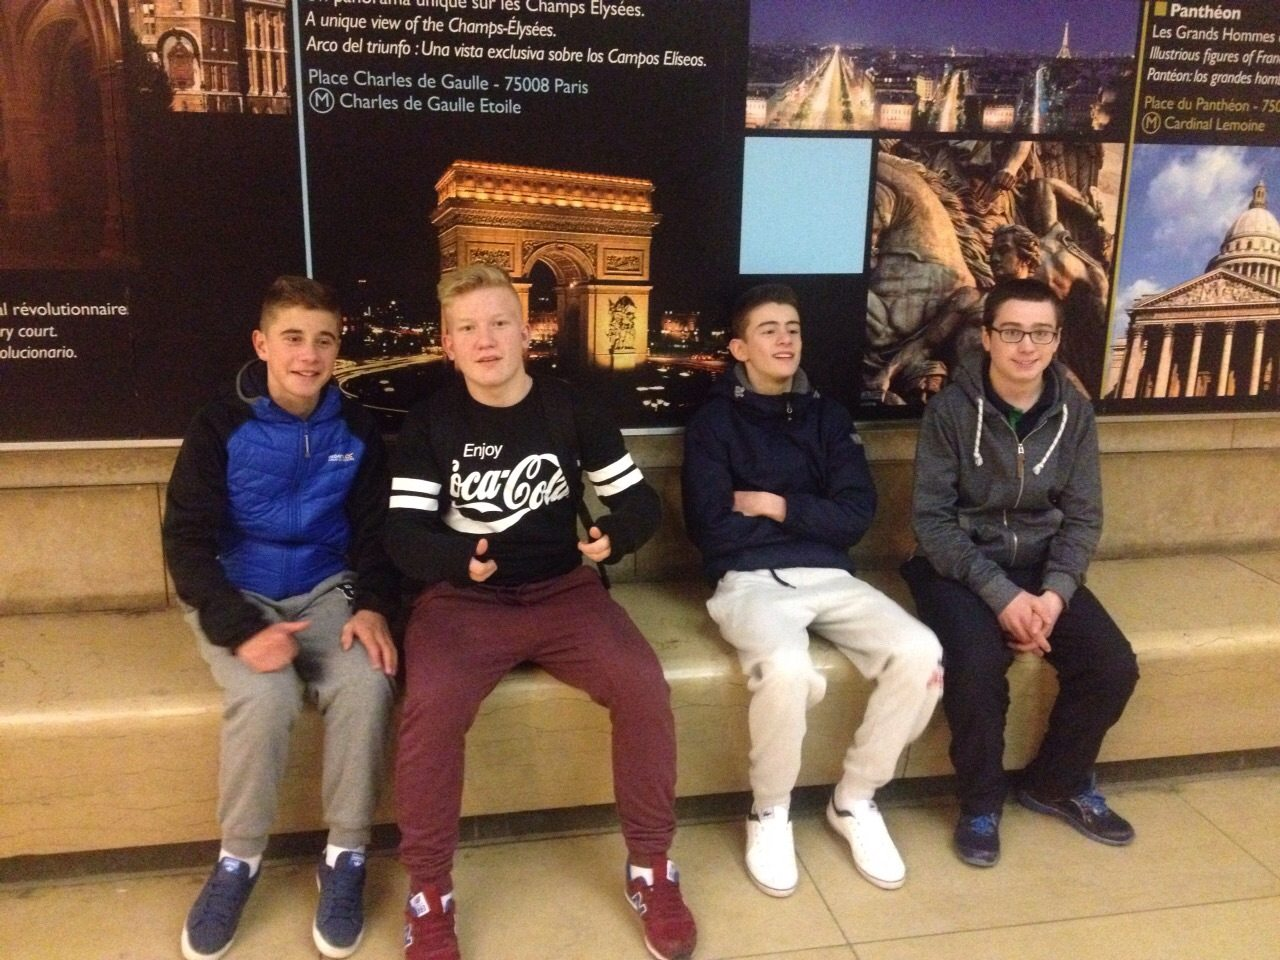 Maciej Zalewski, Dylan Moloney, Darragh Collins and Jeremiah Collins take a well deserved break after their trip to the Arc De Triomphe